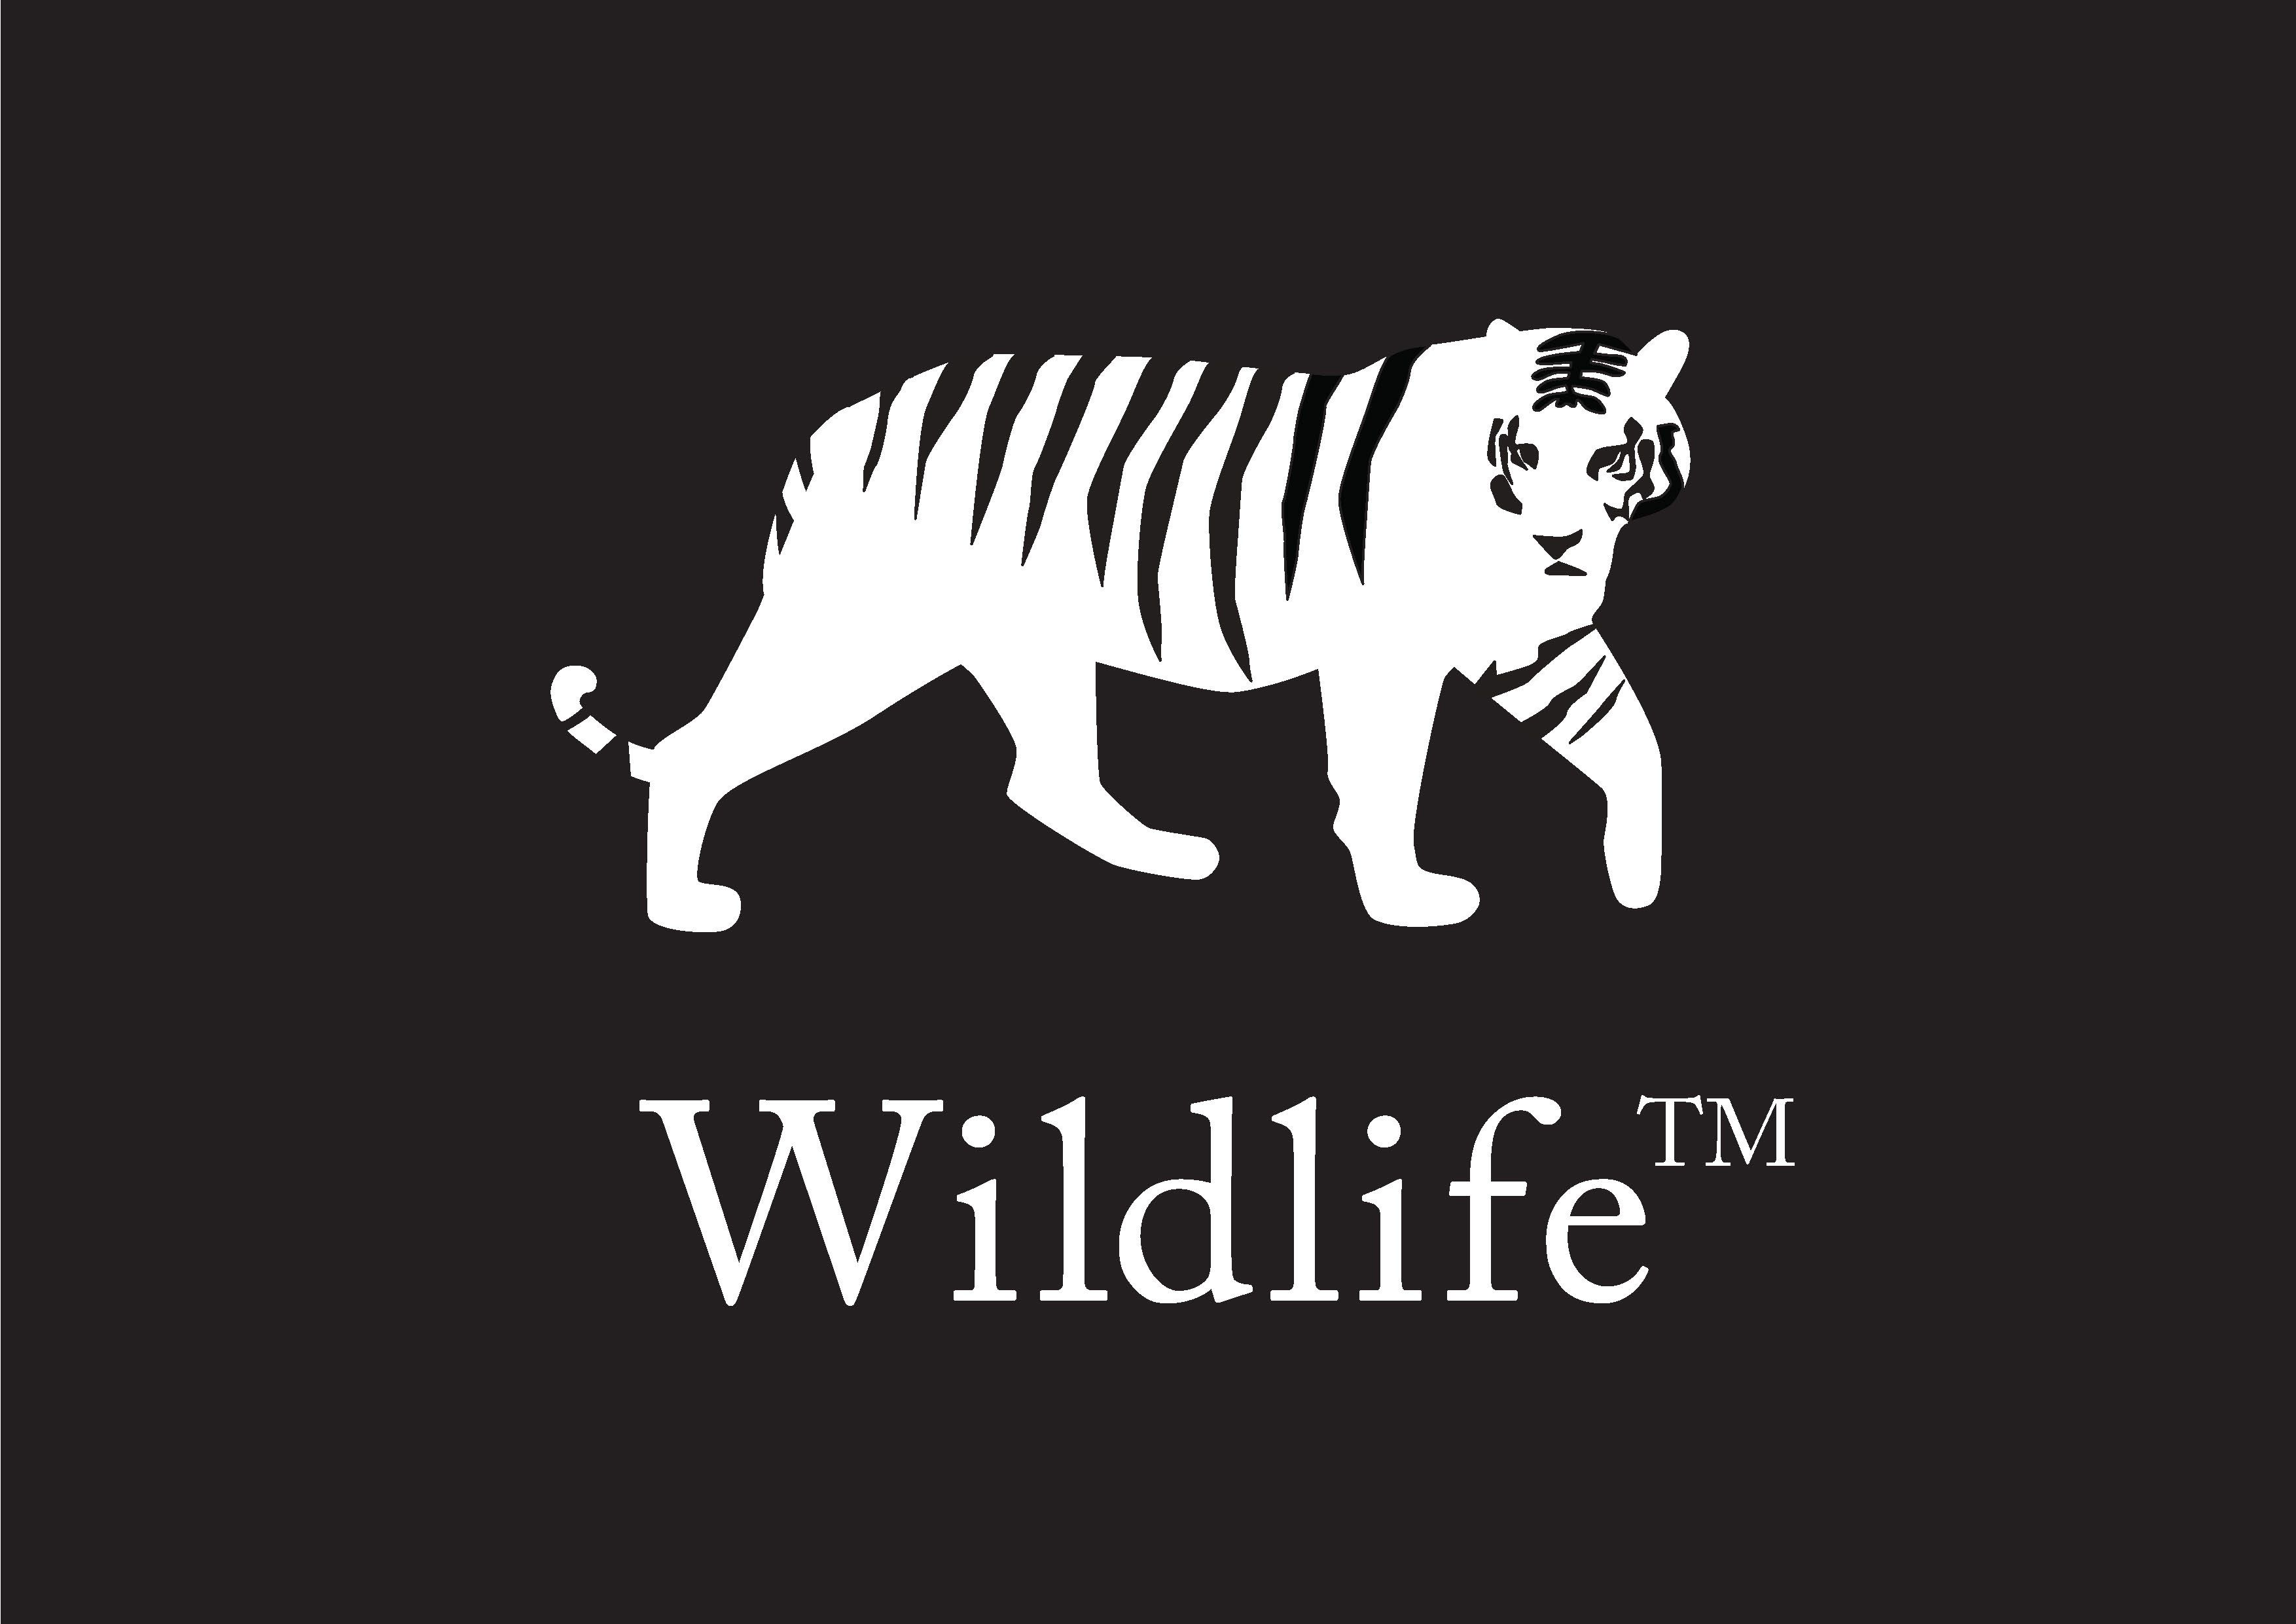 Logo Design Challenge 5 Wildlife Is A Non Profit Organization That